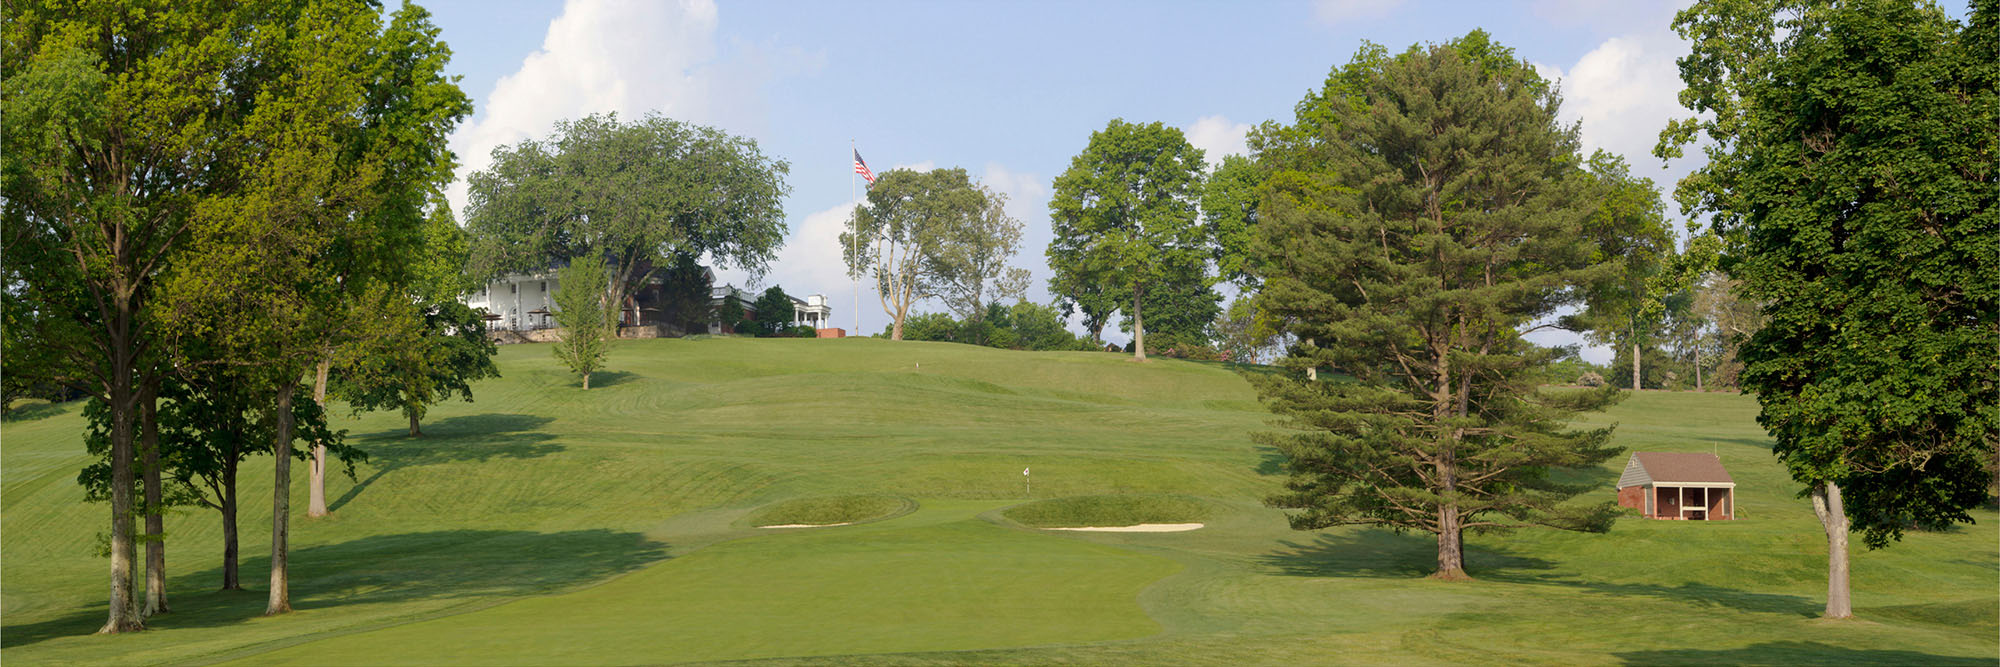 Golf Course Image - Pittsburgh Field Club No. 5